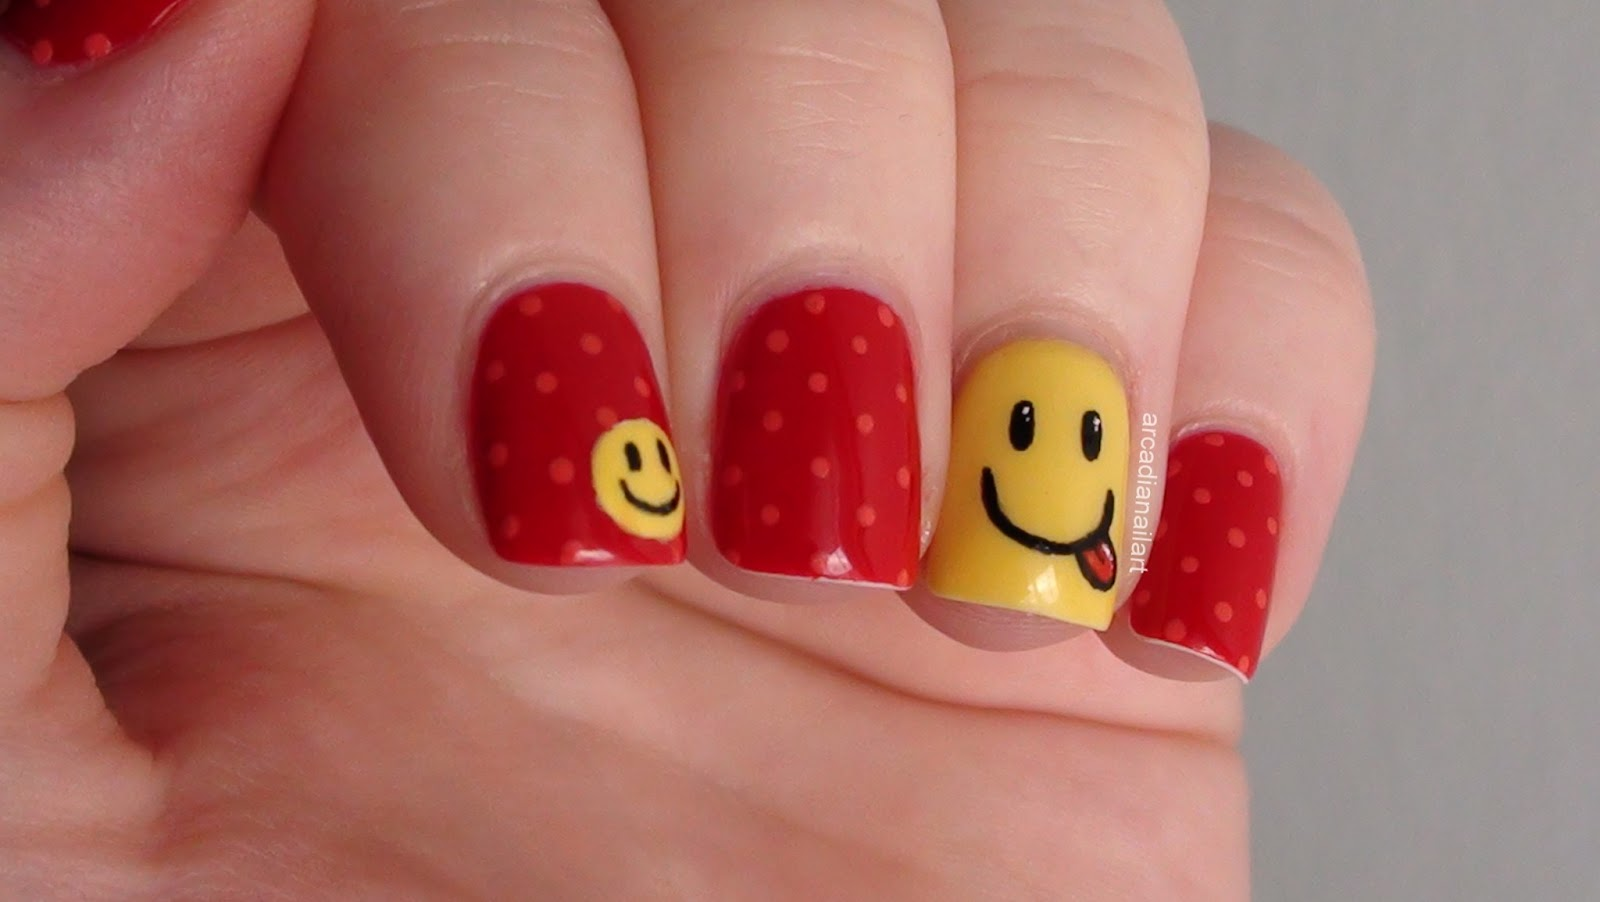 Smiley Face Nails Inspired By Rihanna